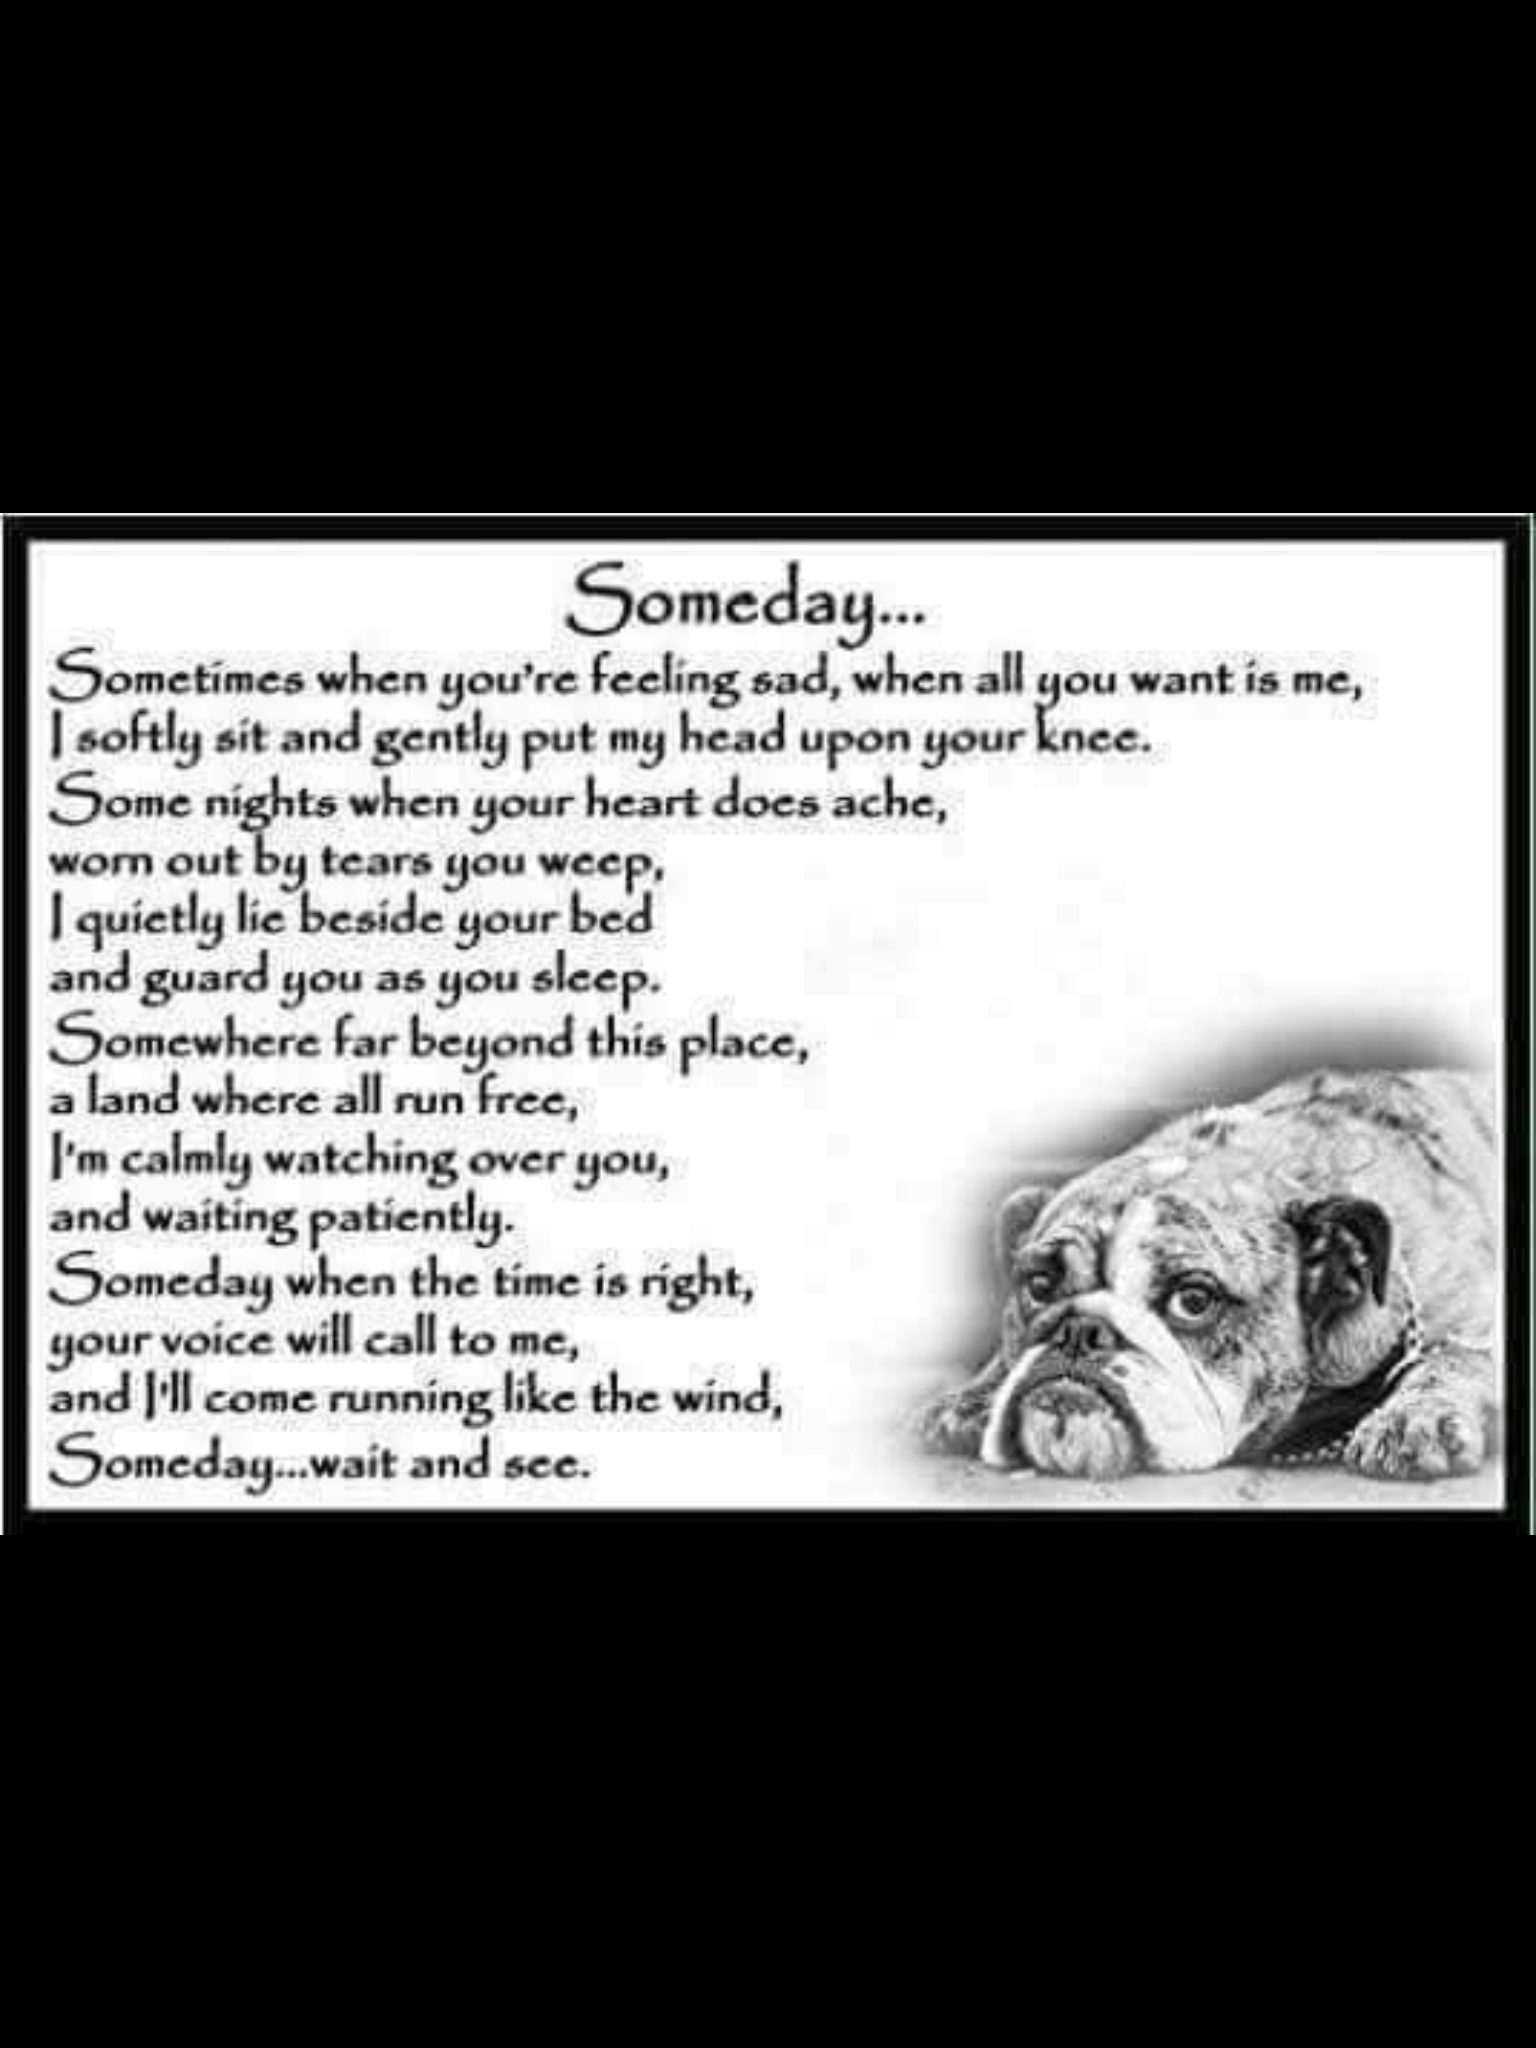 The wiggles bulldog memorial page